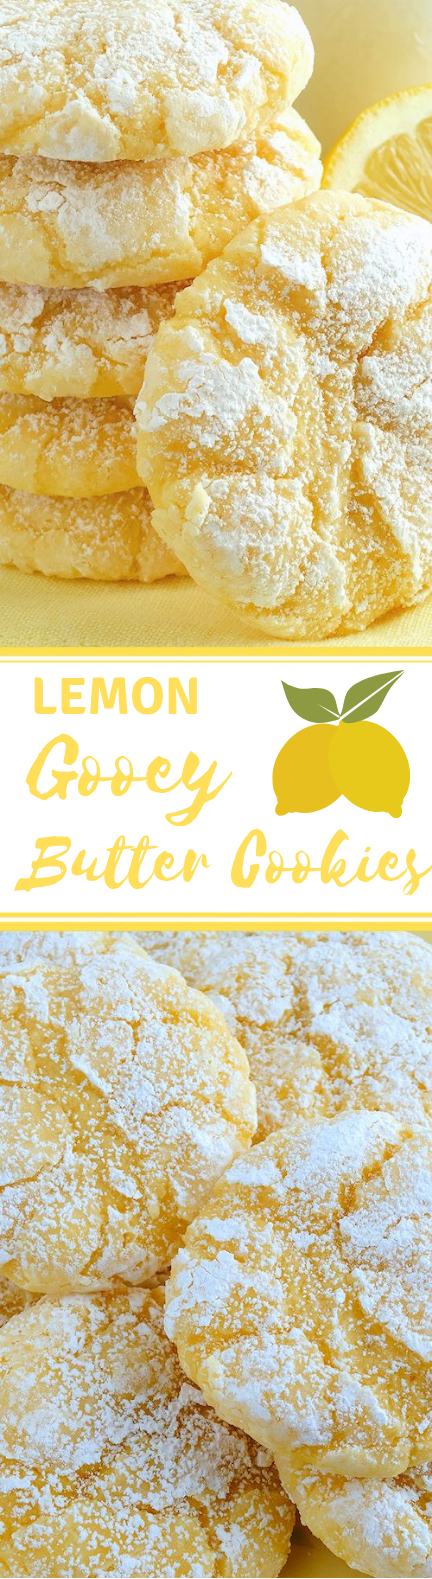 Lemon Gooey Butter Cookies – Best Ever {from scratch!} #Cookies #LemonDessert